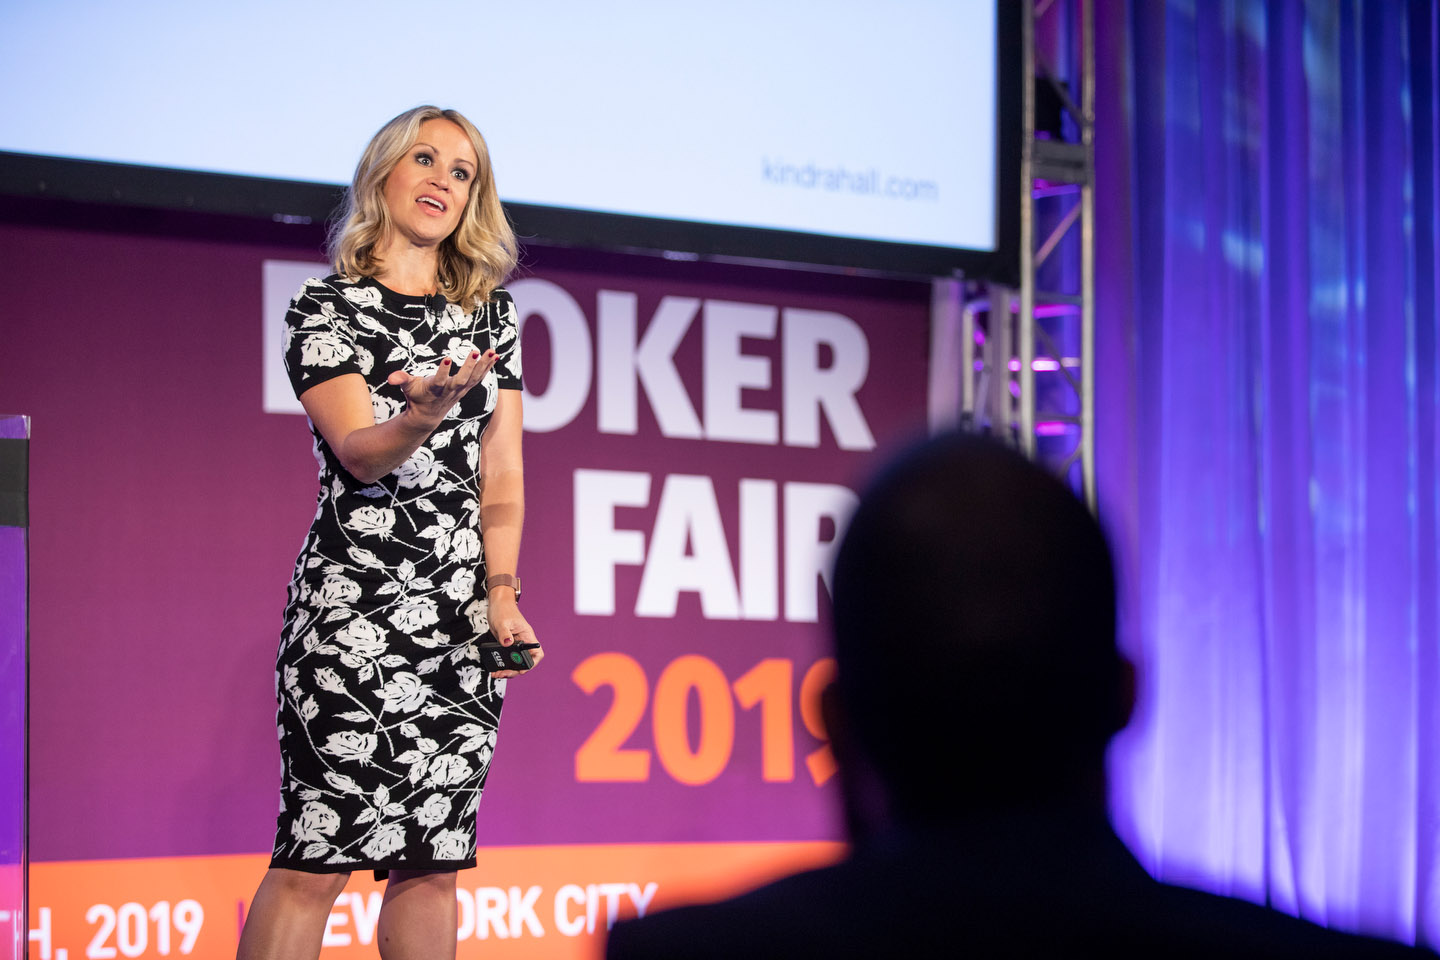 Broker Fair 2019 - Presented by deBanked - 394